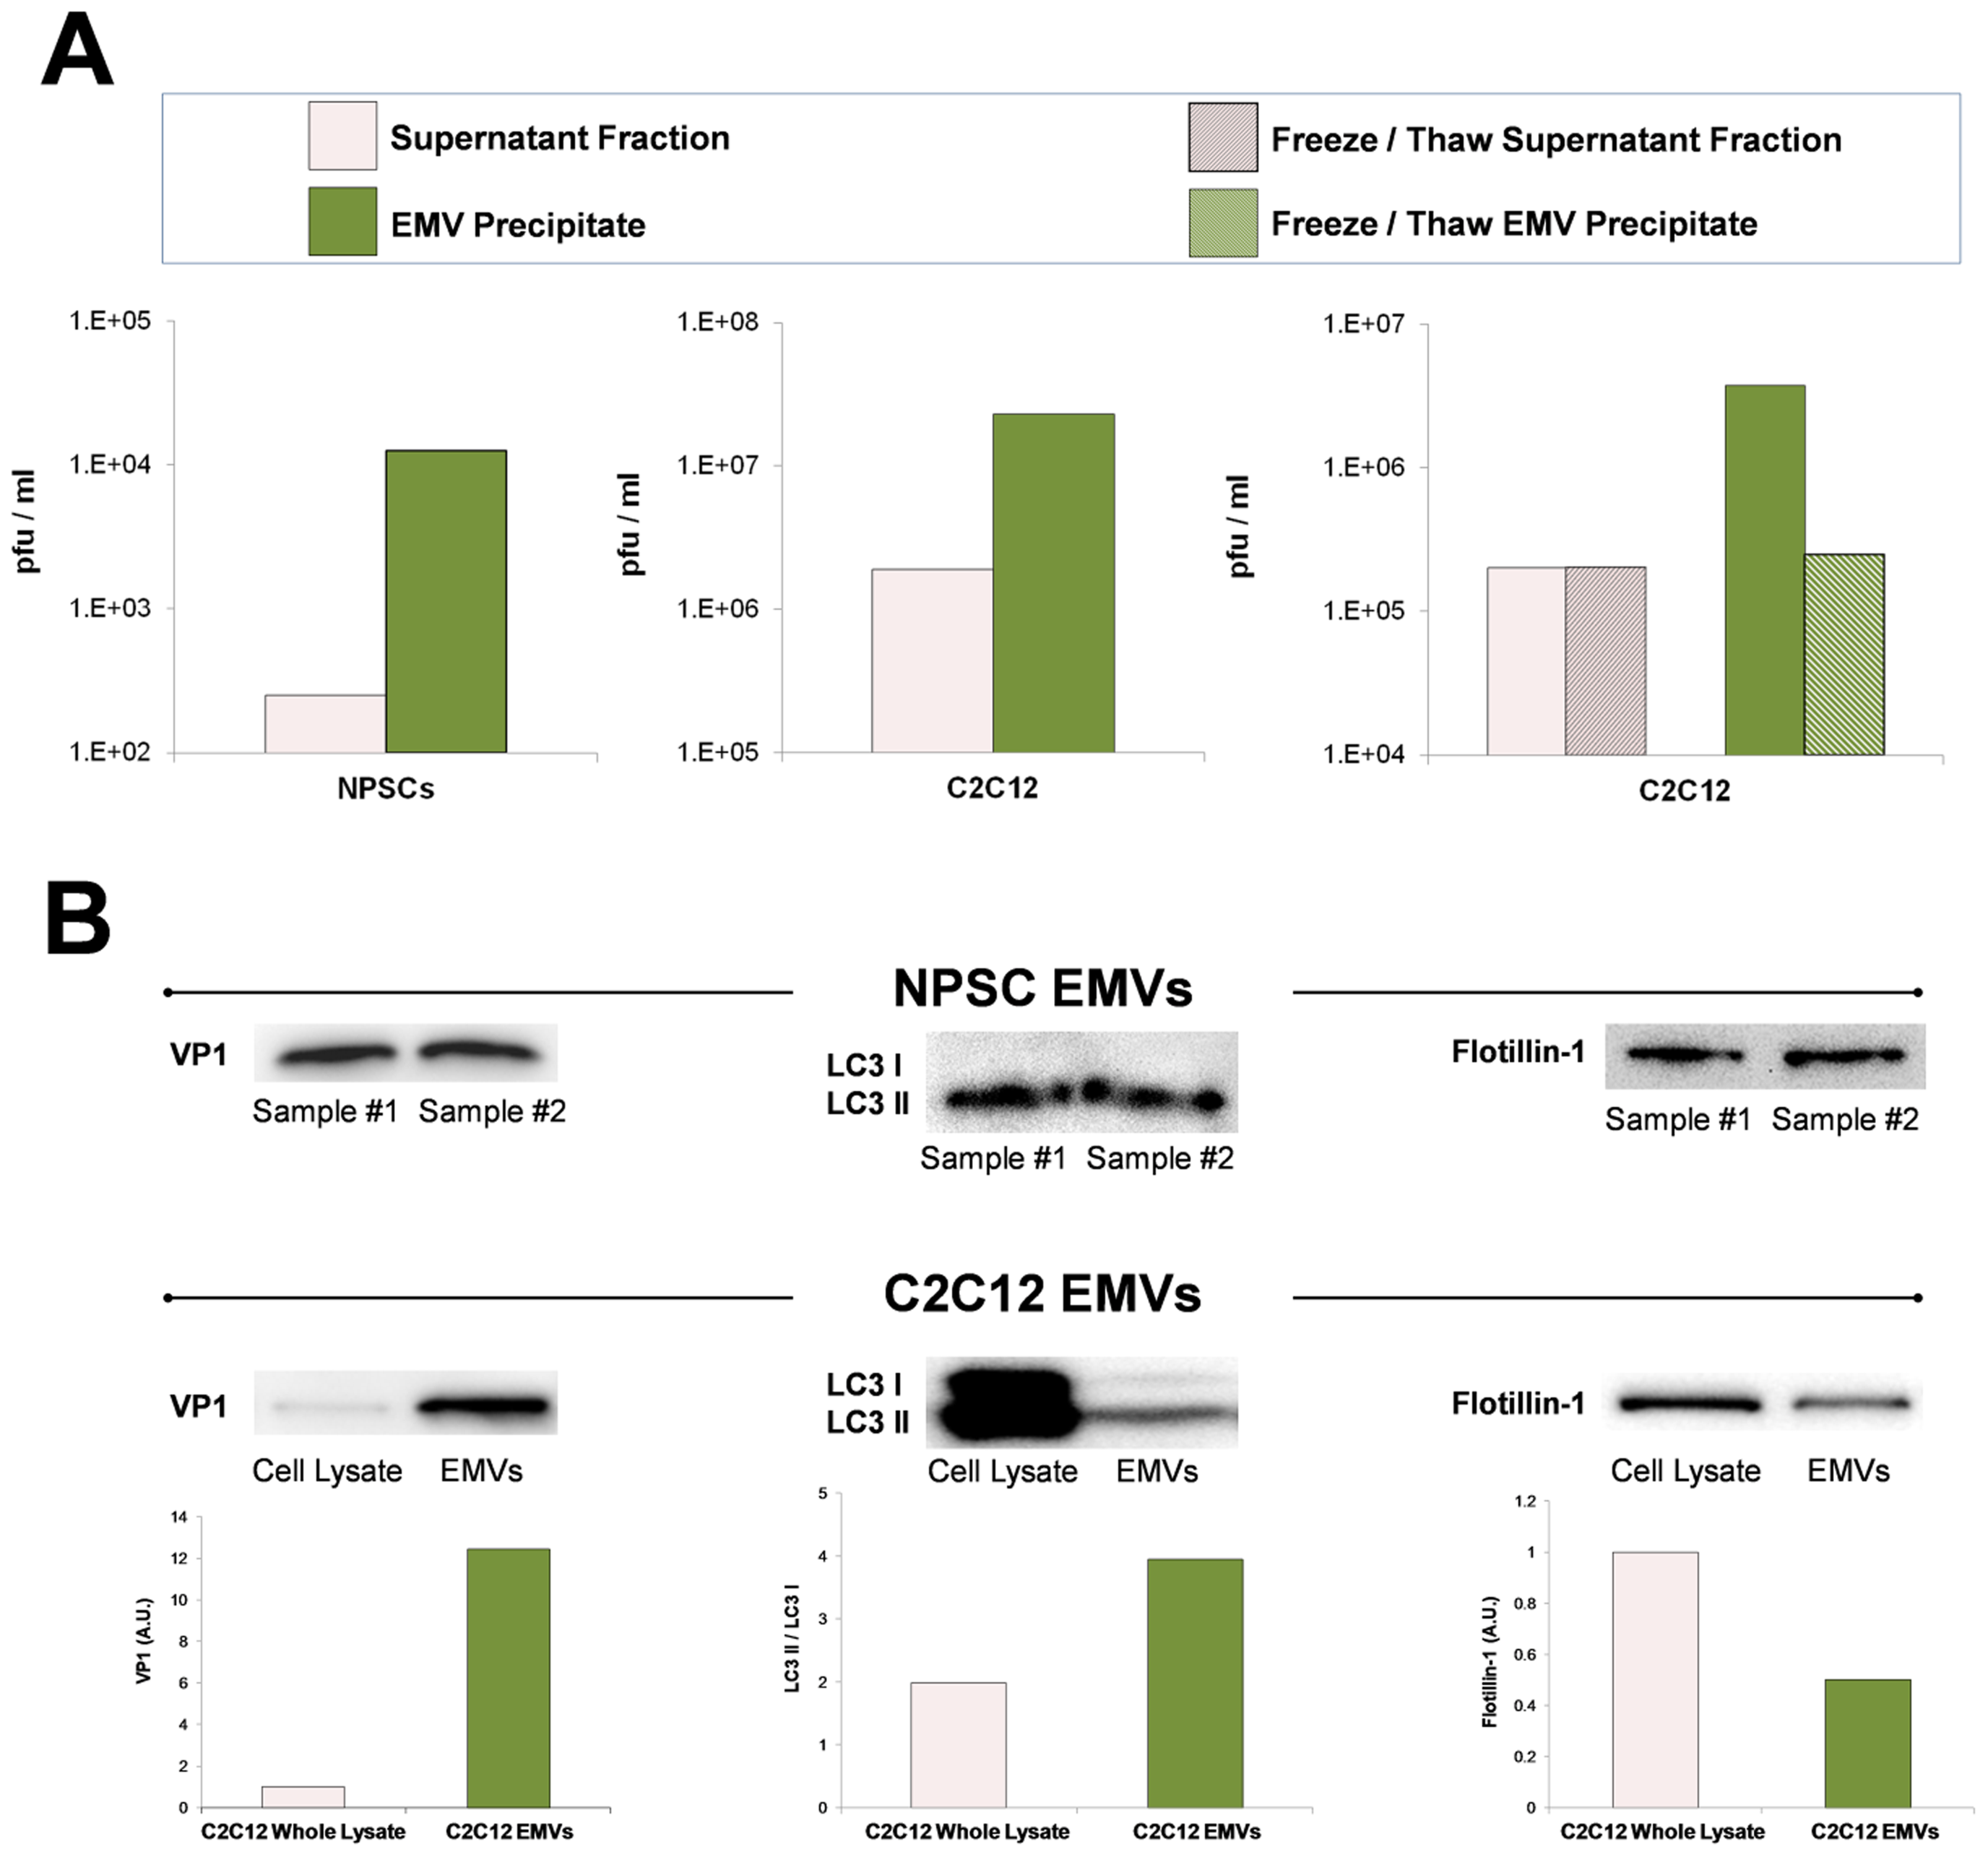 Purified EMVs isolated from infected progenitor cells expressed VP1, LC3 II and flotillin-1 proteins.